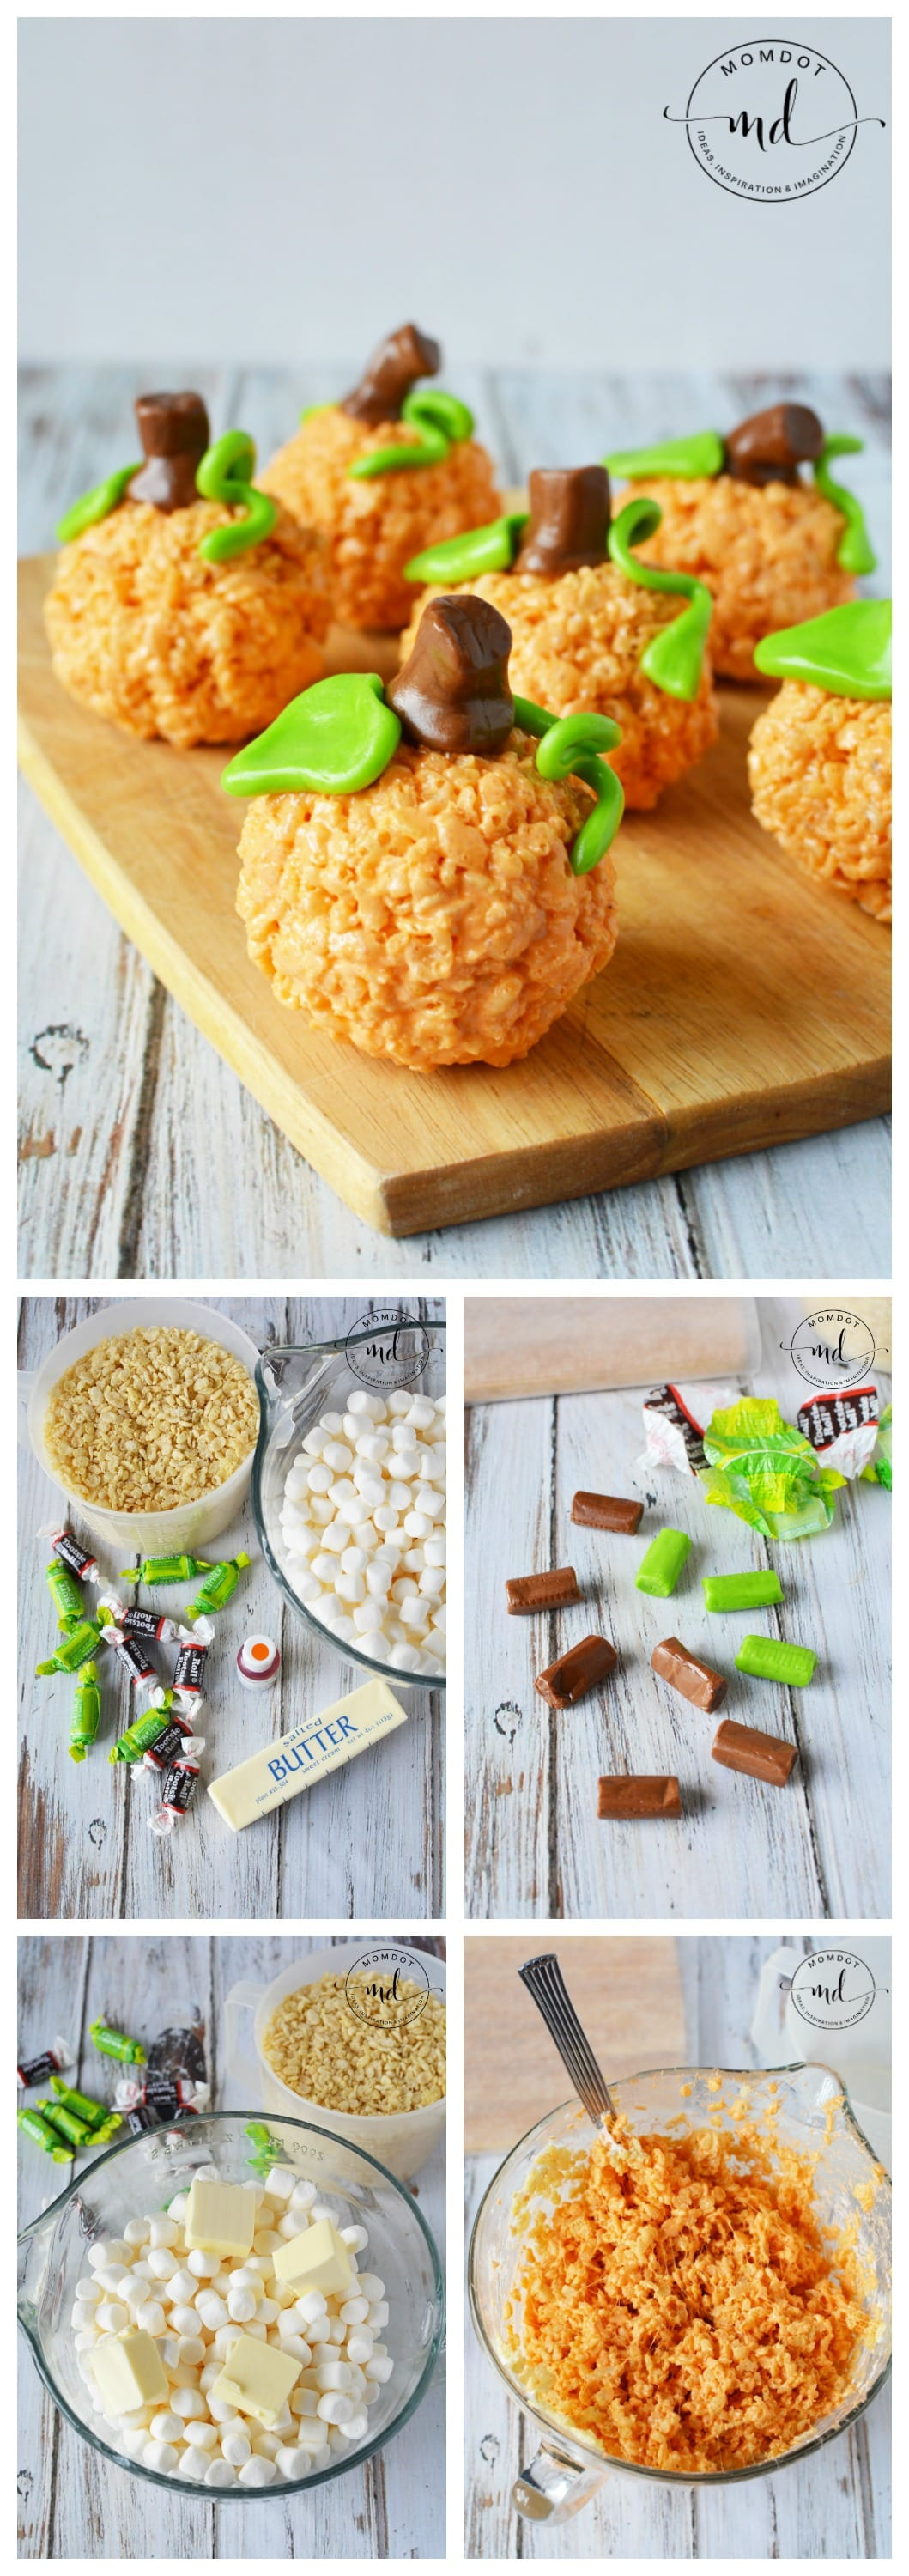 pumpkin rice krispie treats recipe how to make pumpkin rice krispie treats with tootsie roll